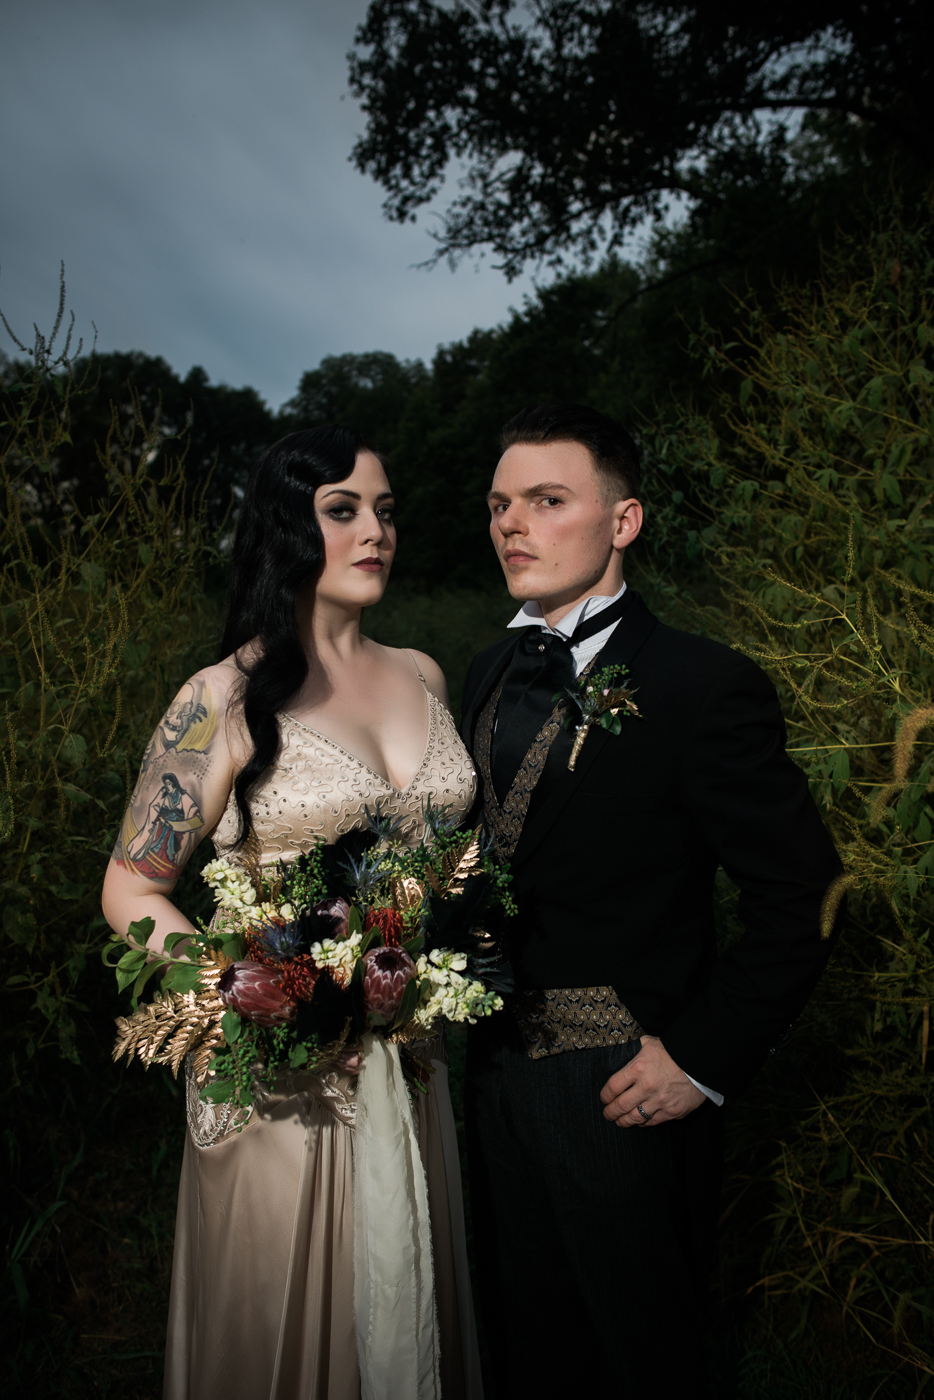 and-how-imaging-gothic-inspired-styled-shoot-gothic-wedding-1920s-theme-wedding-1920s-inspired-styled-shoot-halloween-styled-shoot-gothic-inspired-wedding-38